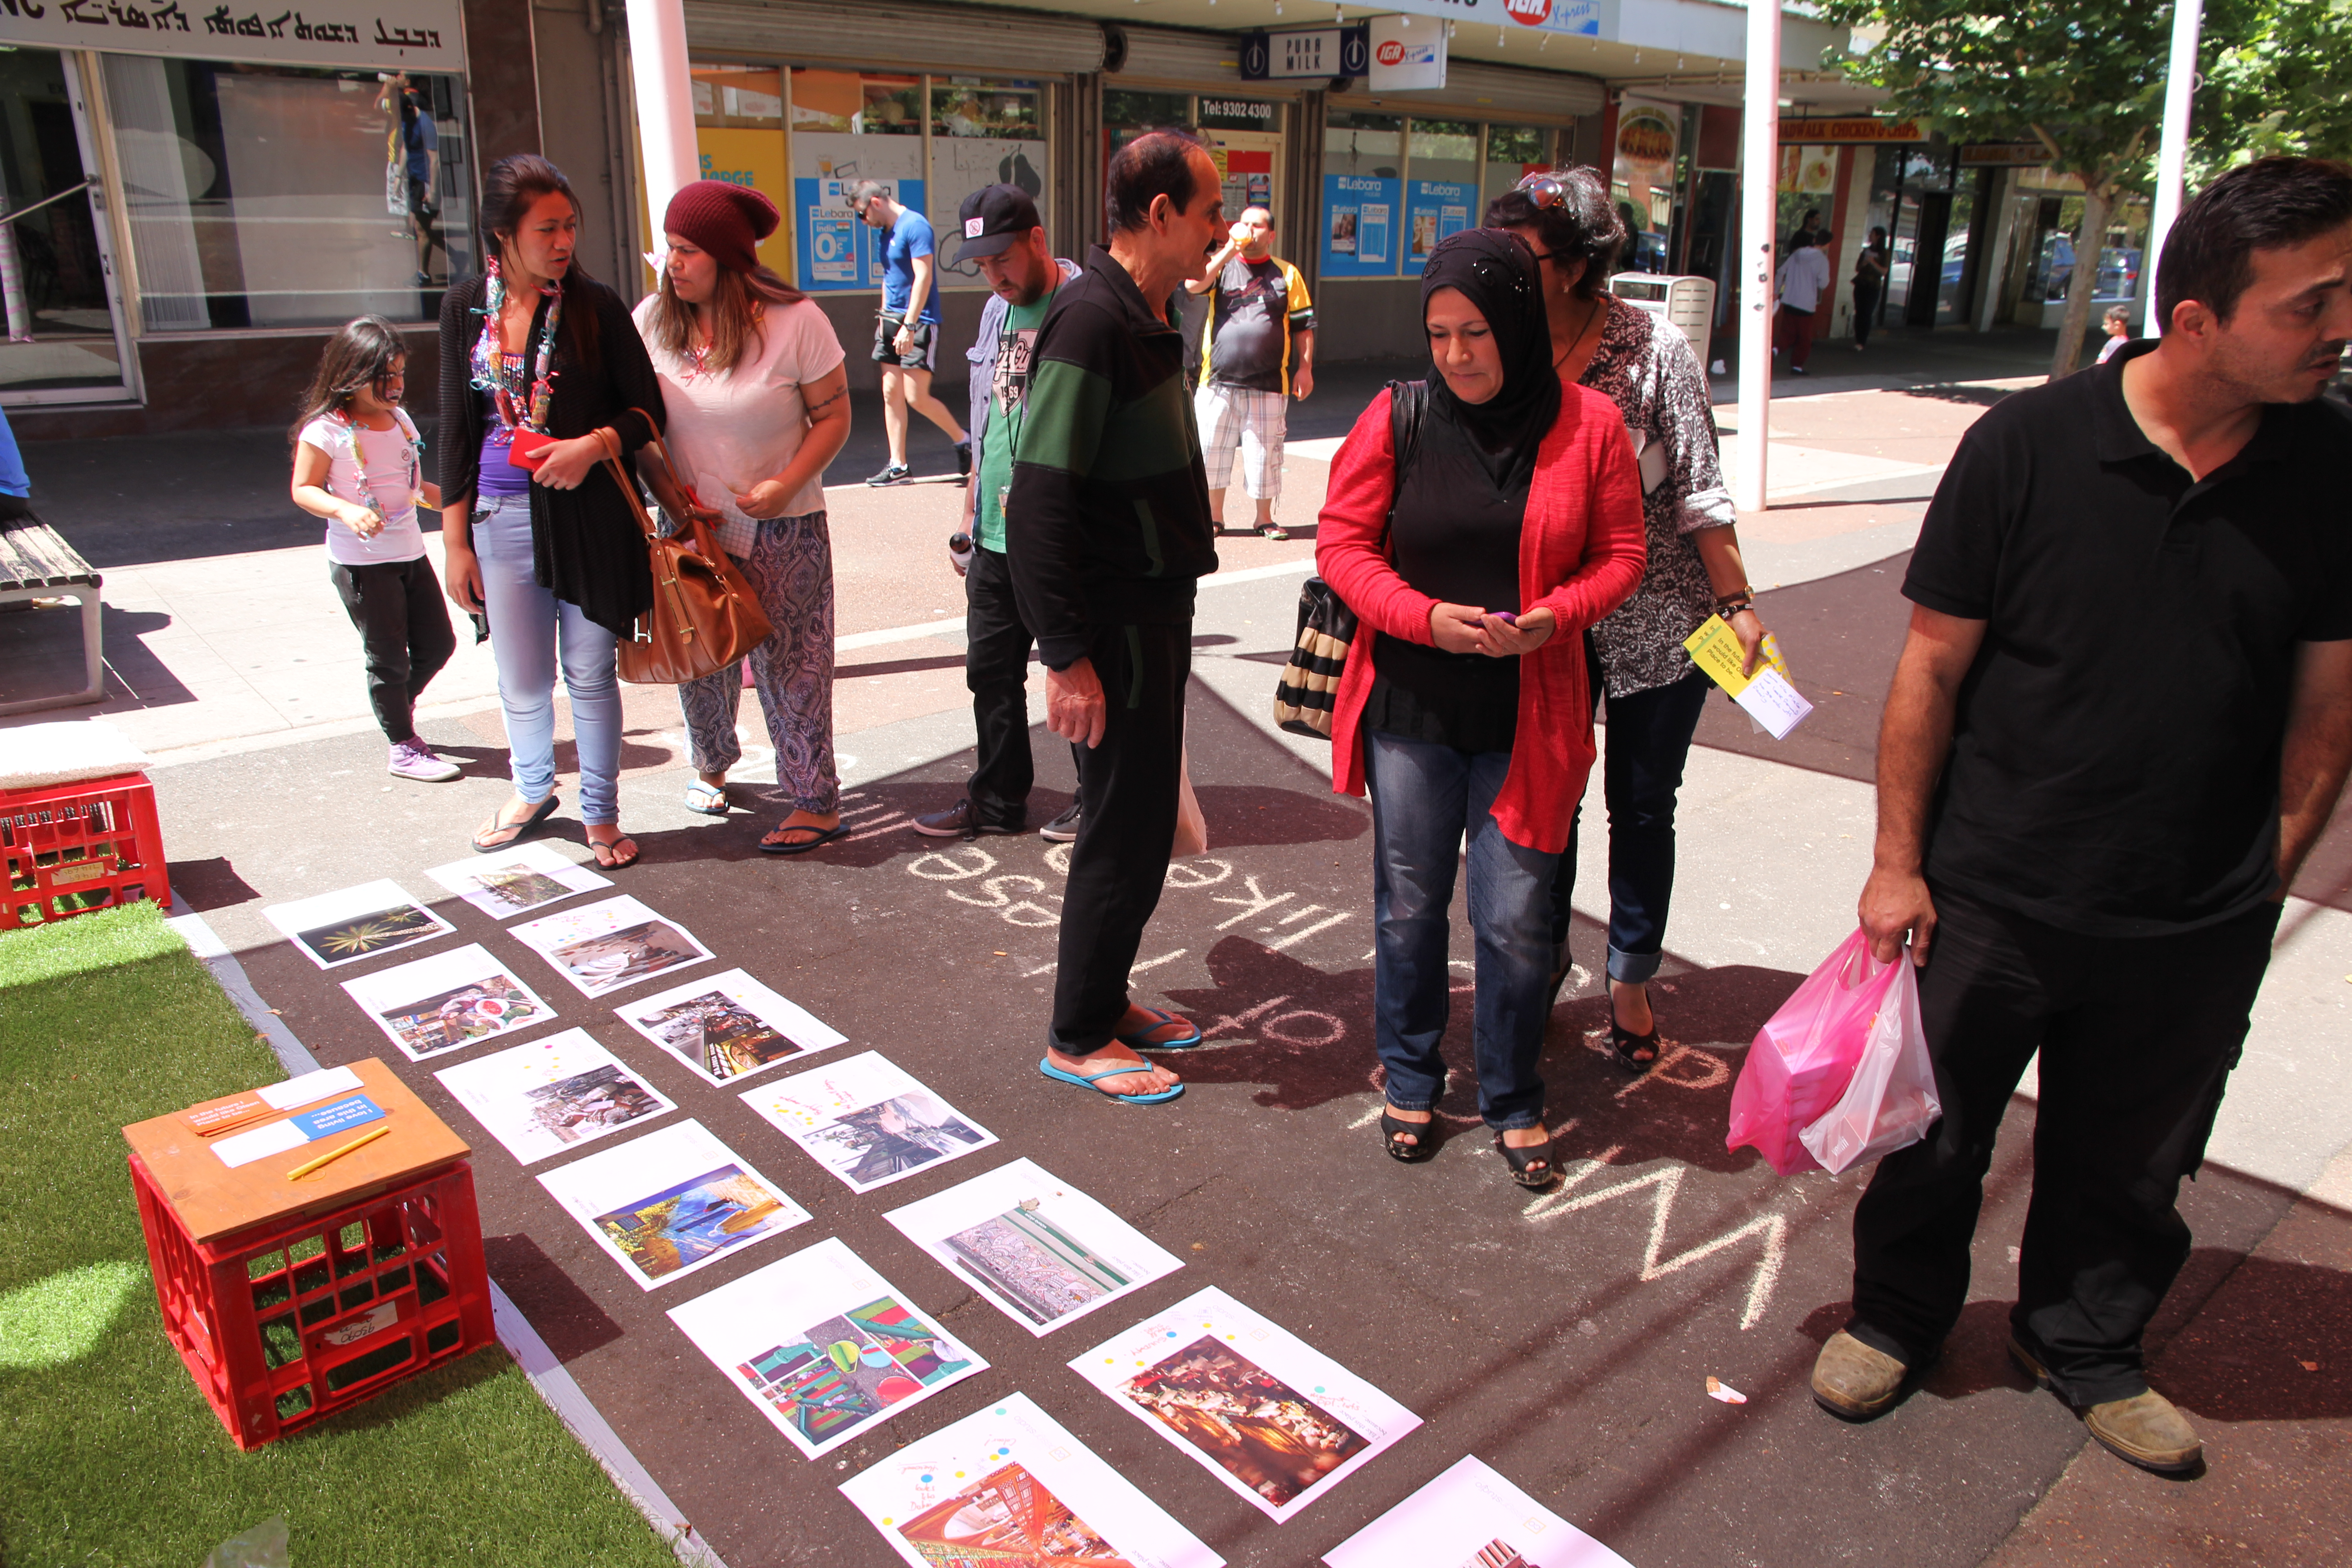 Six people looking at pictures on the ground showing different images